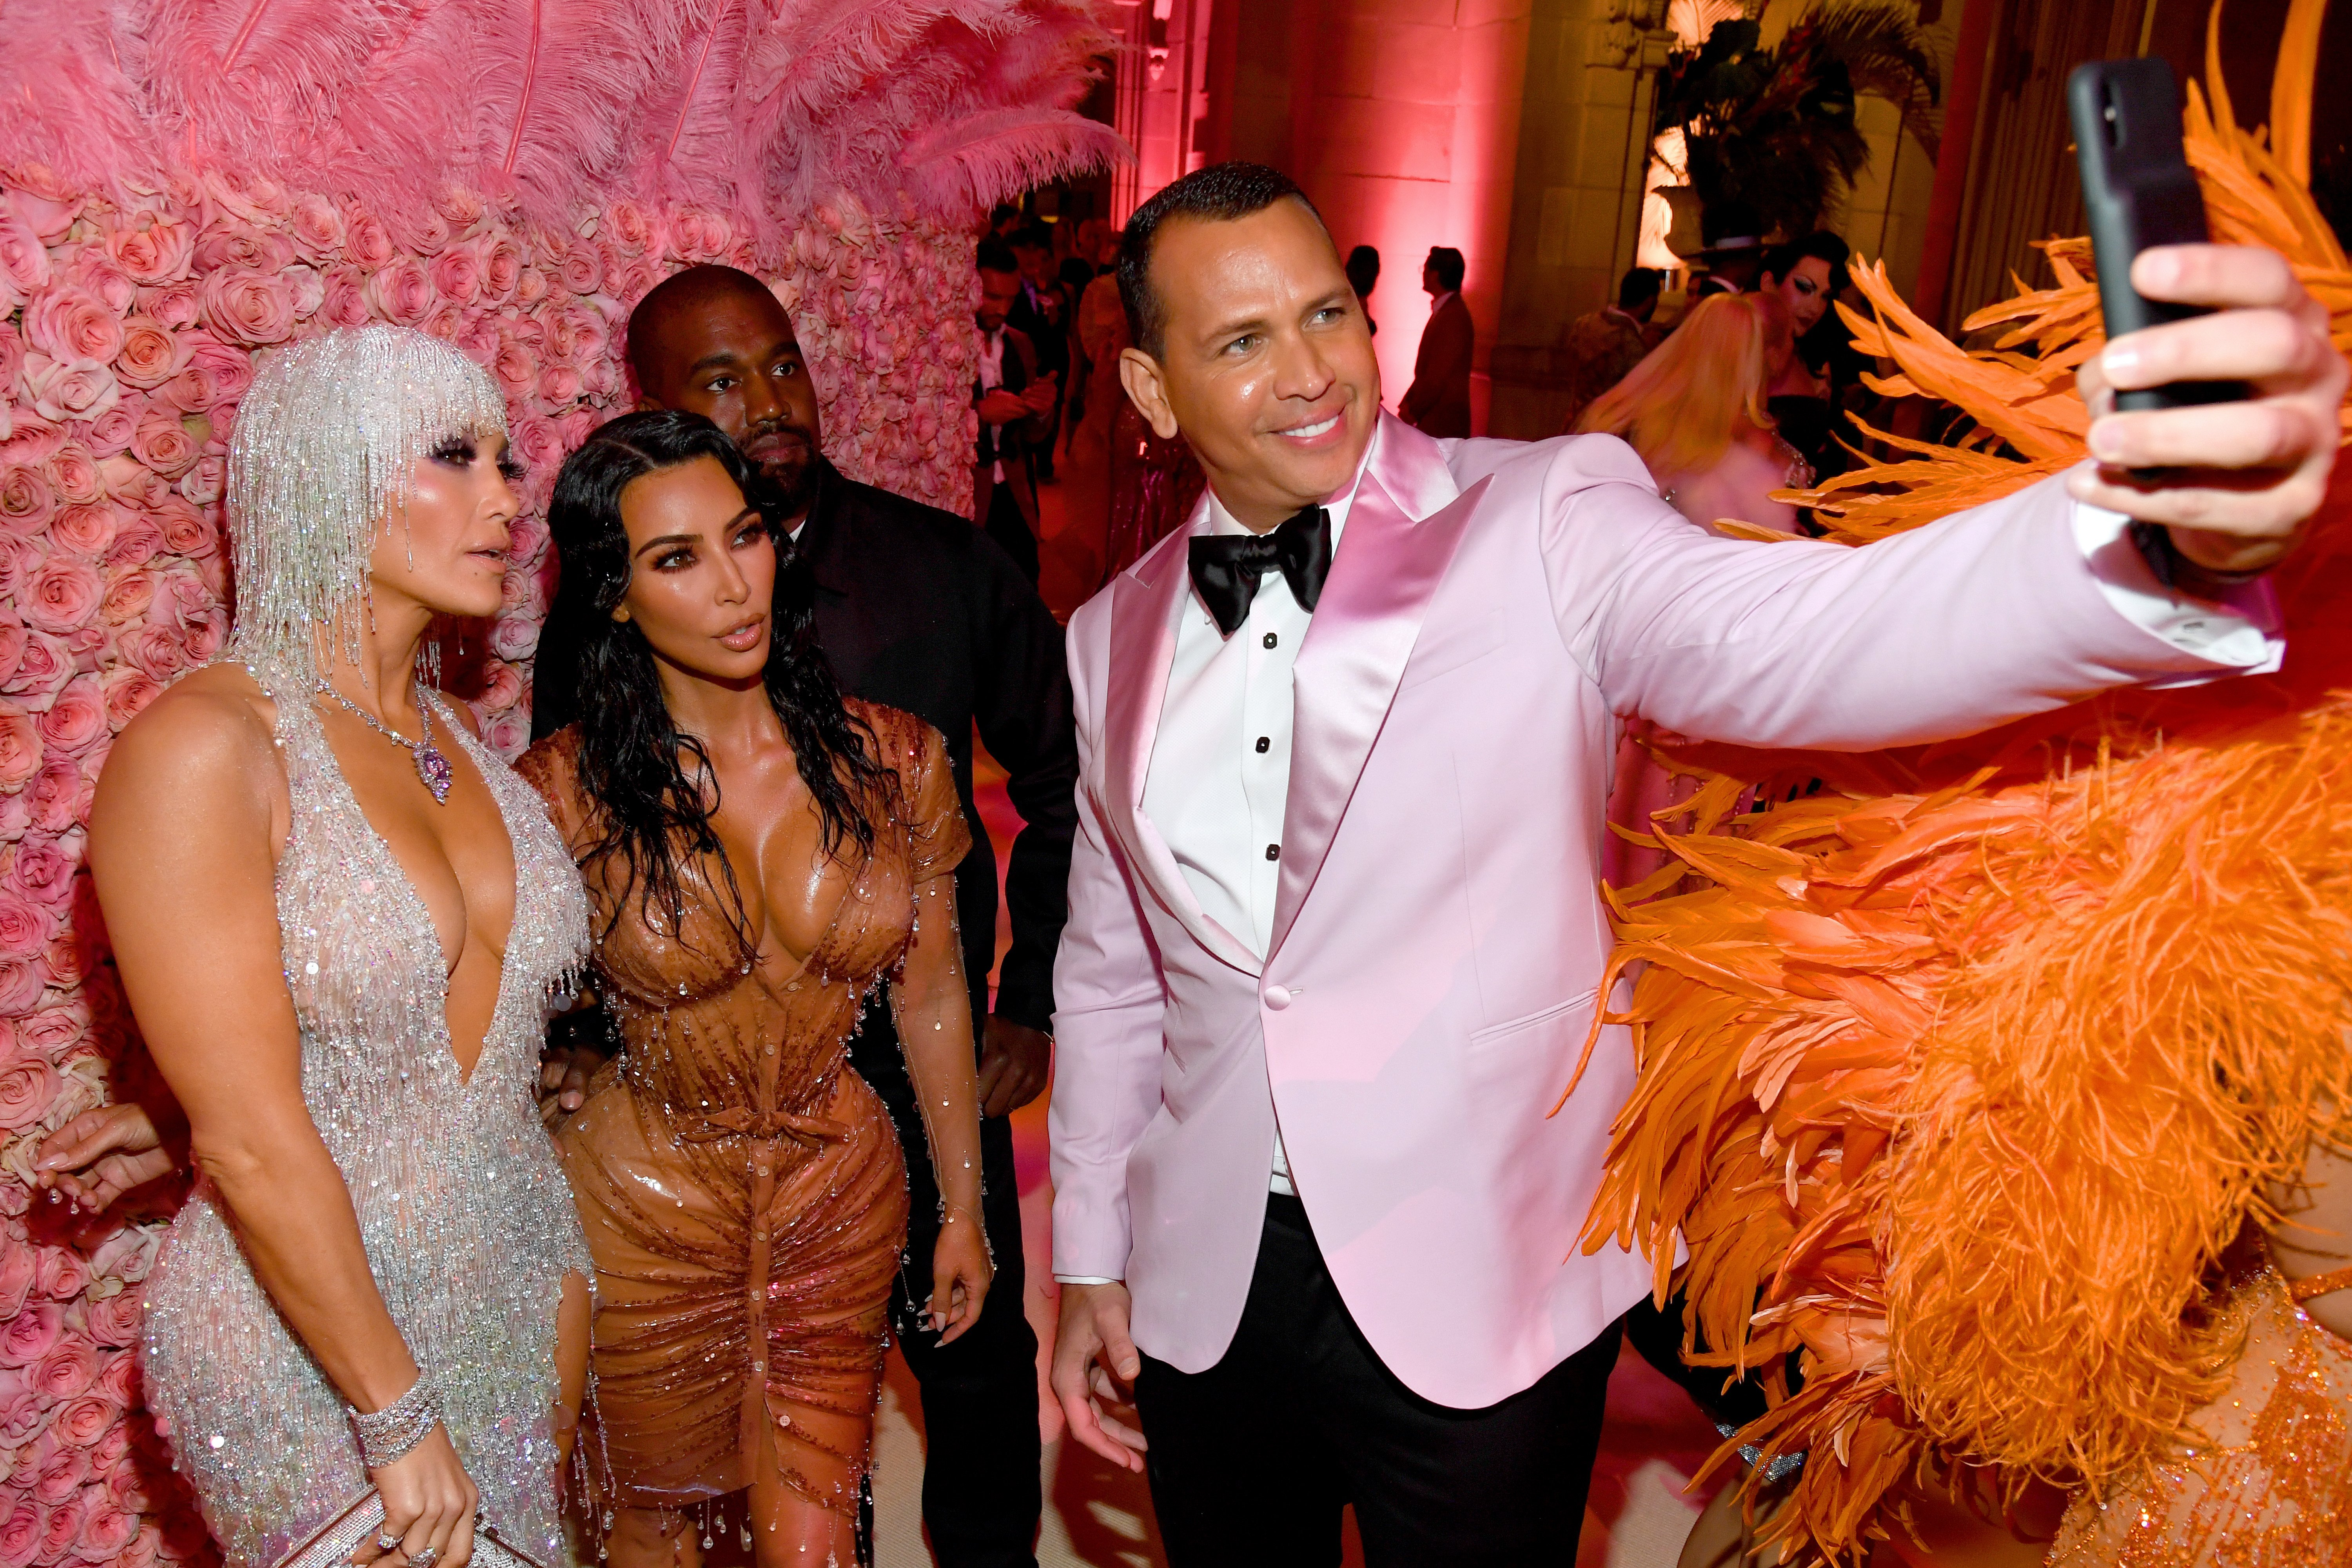 Jennifer Lopez and Alex Rodriguez posing with Kim Kardashian and Kanye West at the 2019 Met Gala | Photo: Getty Images